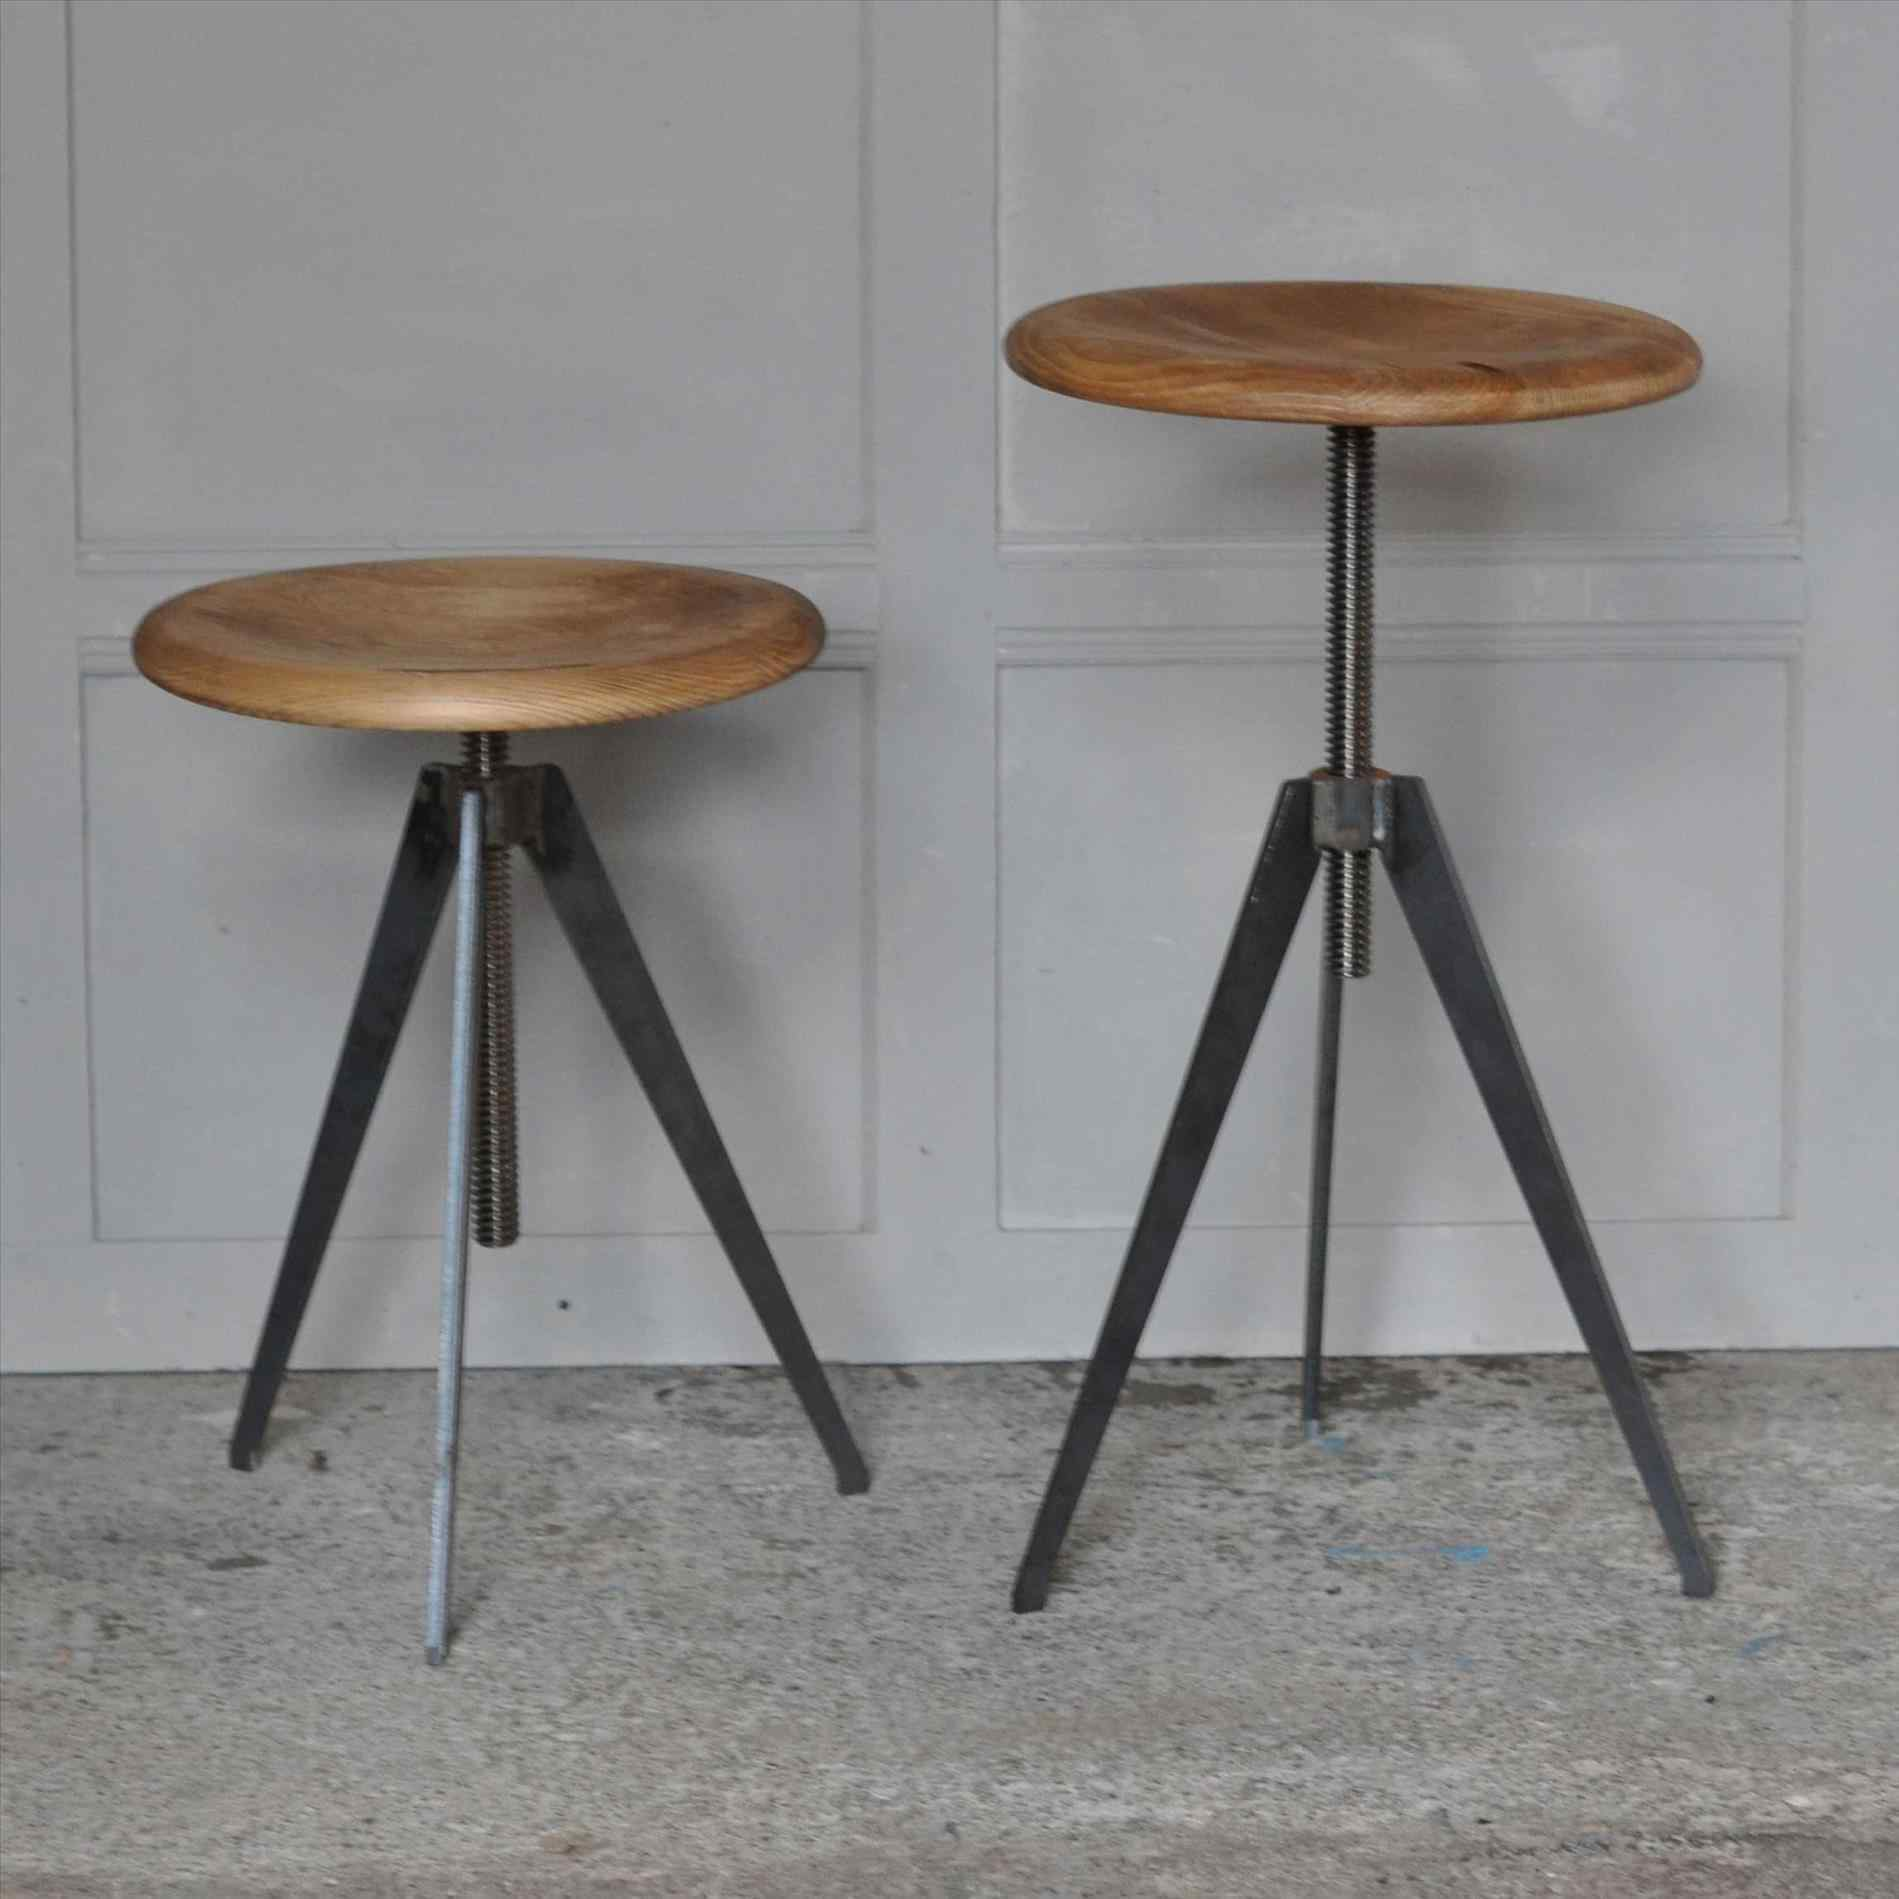 rhthedestcom table screw top fetching killian marble round accent tables for black oak cafeteria from tom wall light shades large mirror perspex coffee york furniture chest